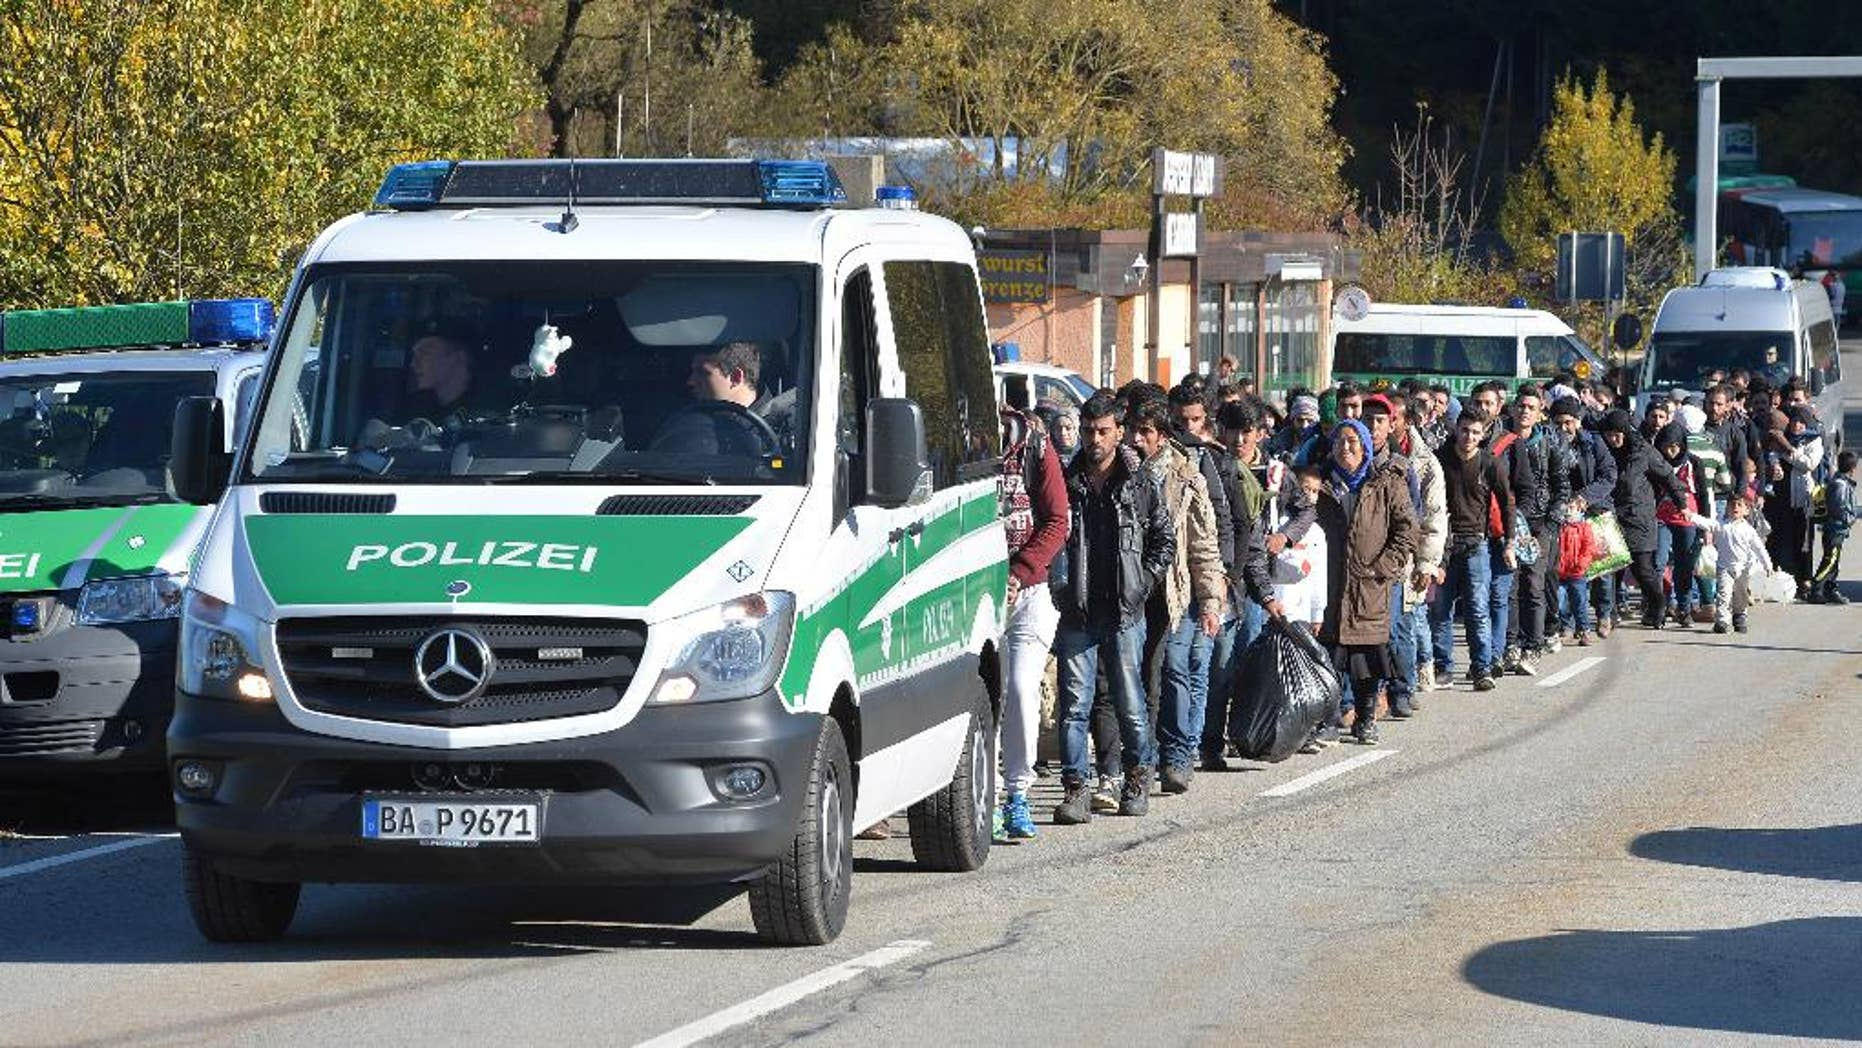 German federal police guide a group of migrants on their way.